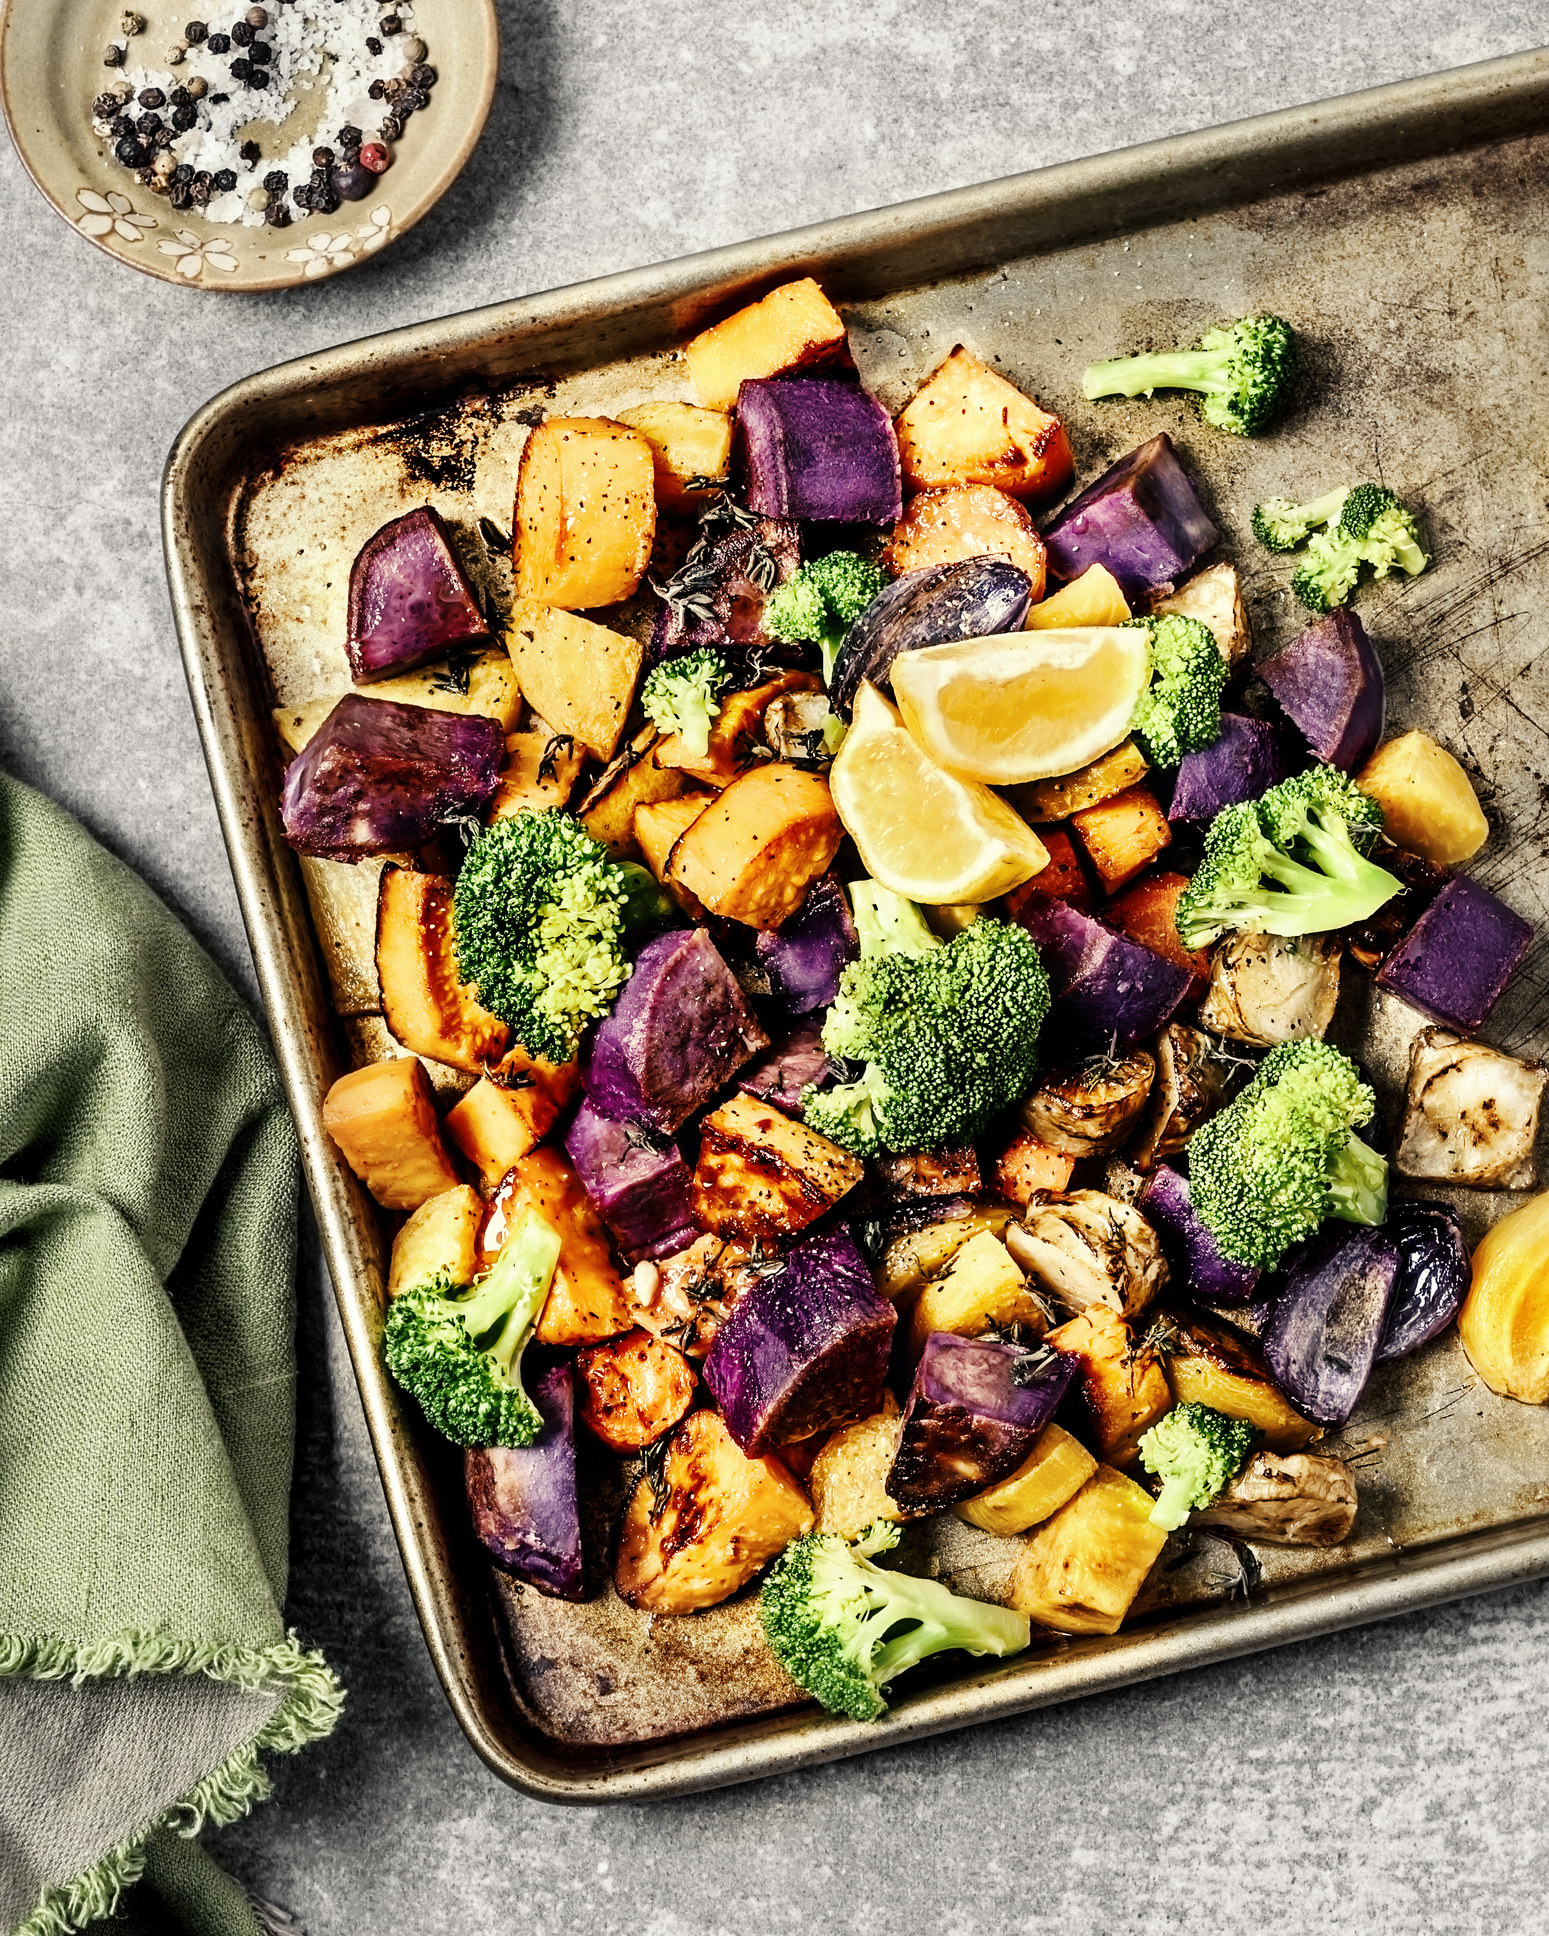 A sheet pan of different roasted veggies like broccoli and sweet potato.